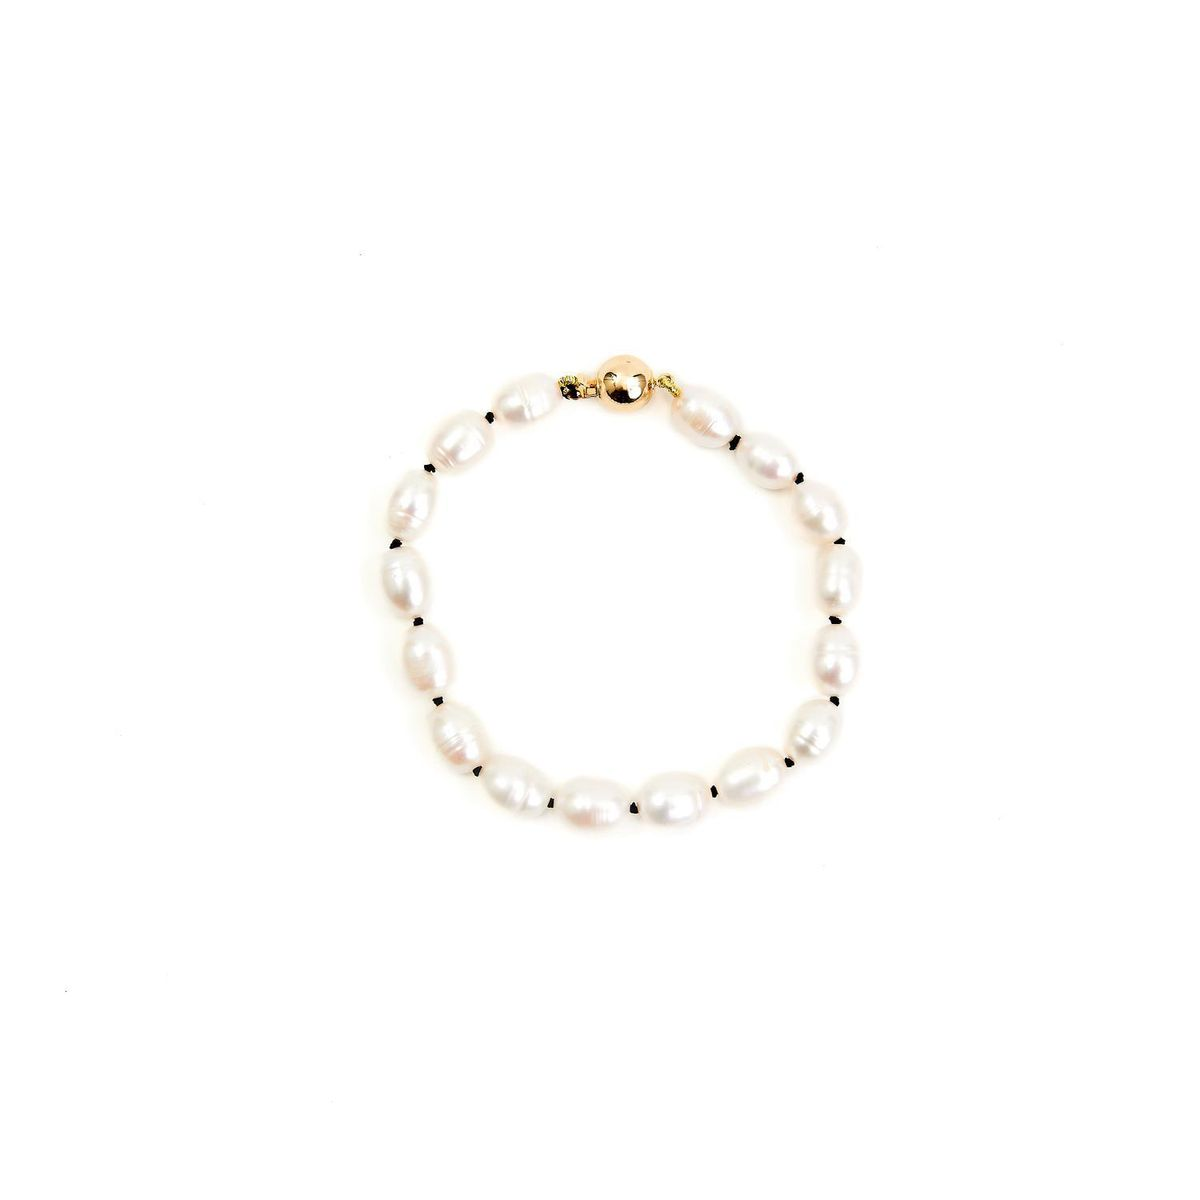 Ivory Pearl Knotted Bracelet